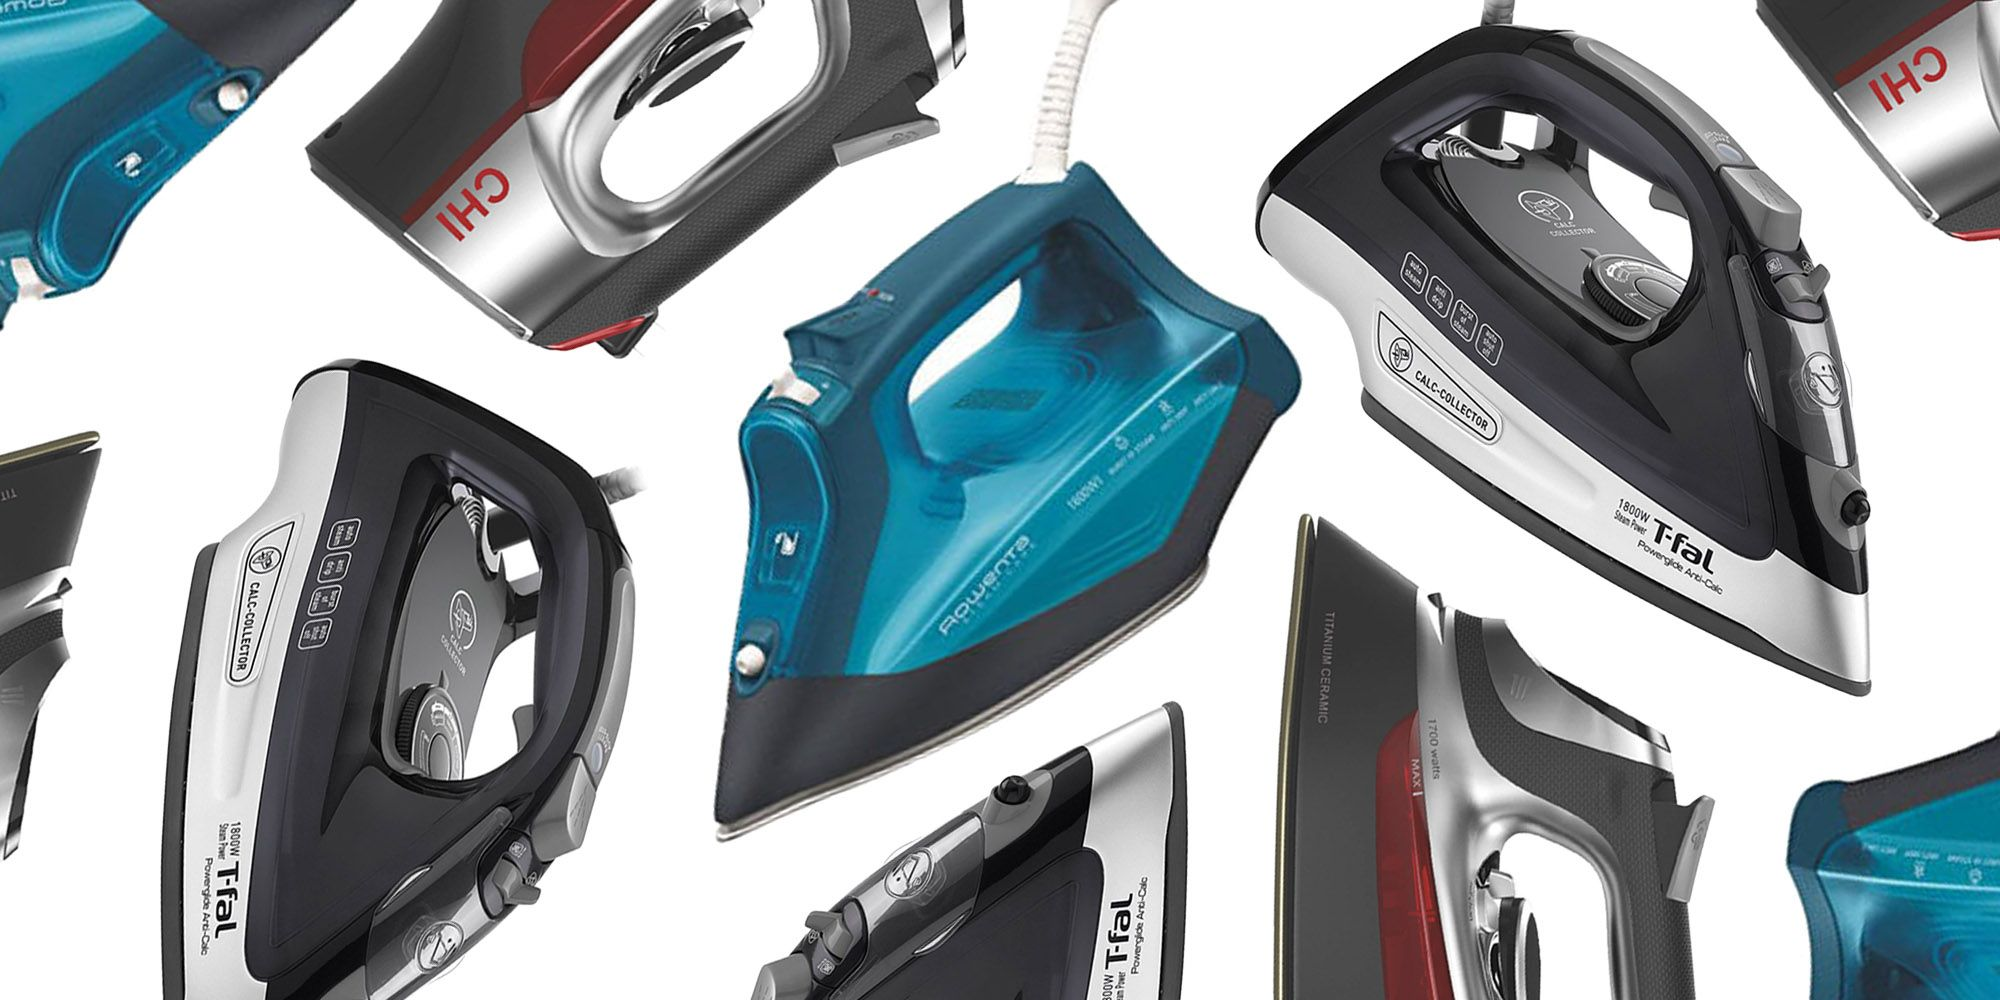 8 Best Steam Irons According To Cleaning Experts